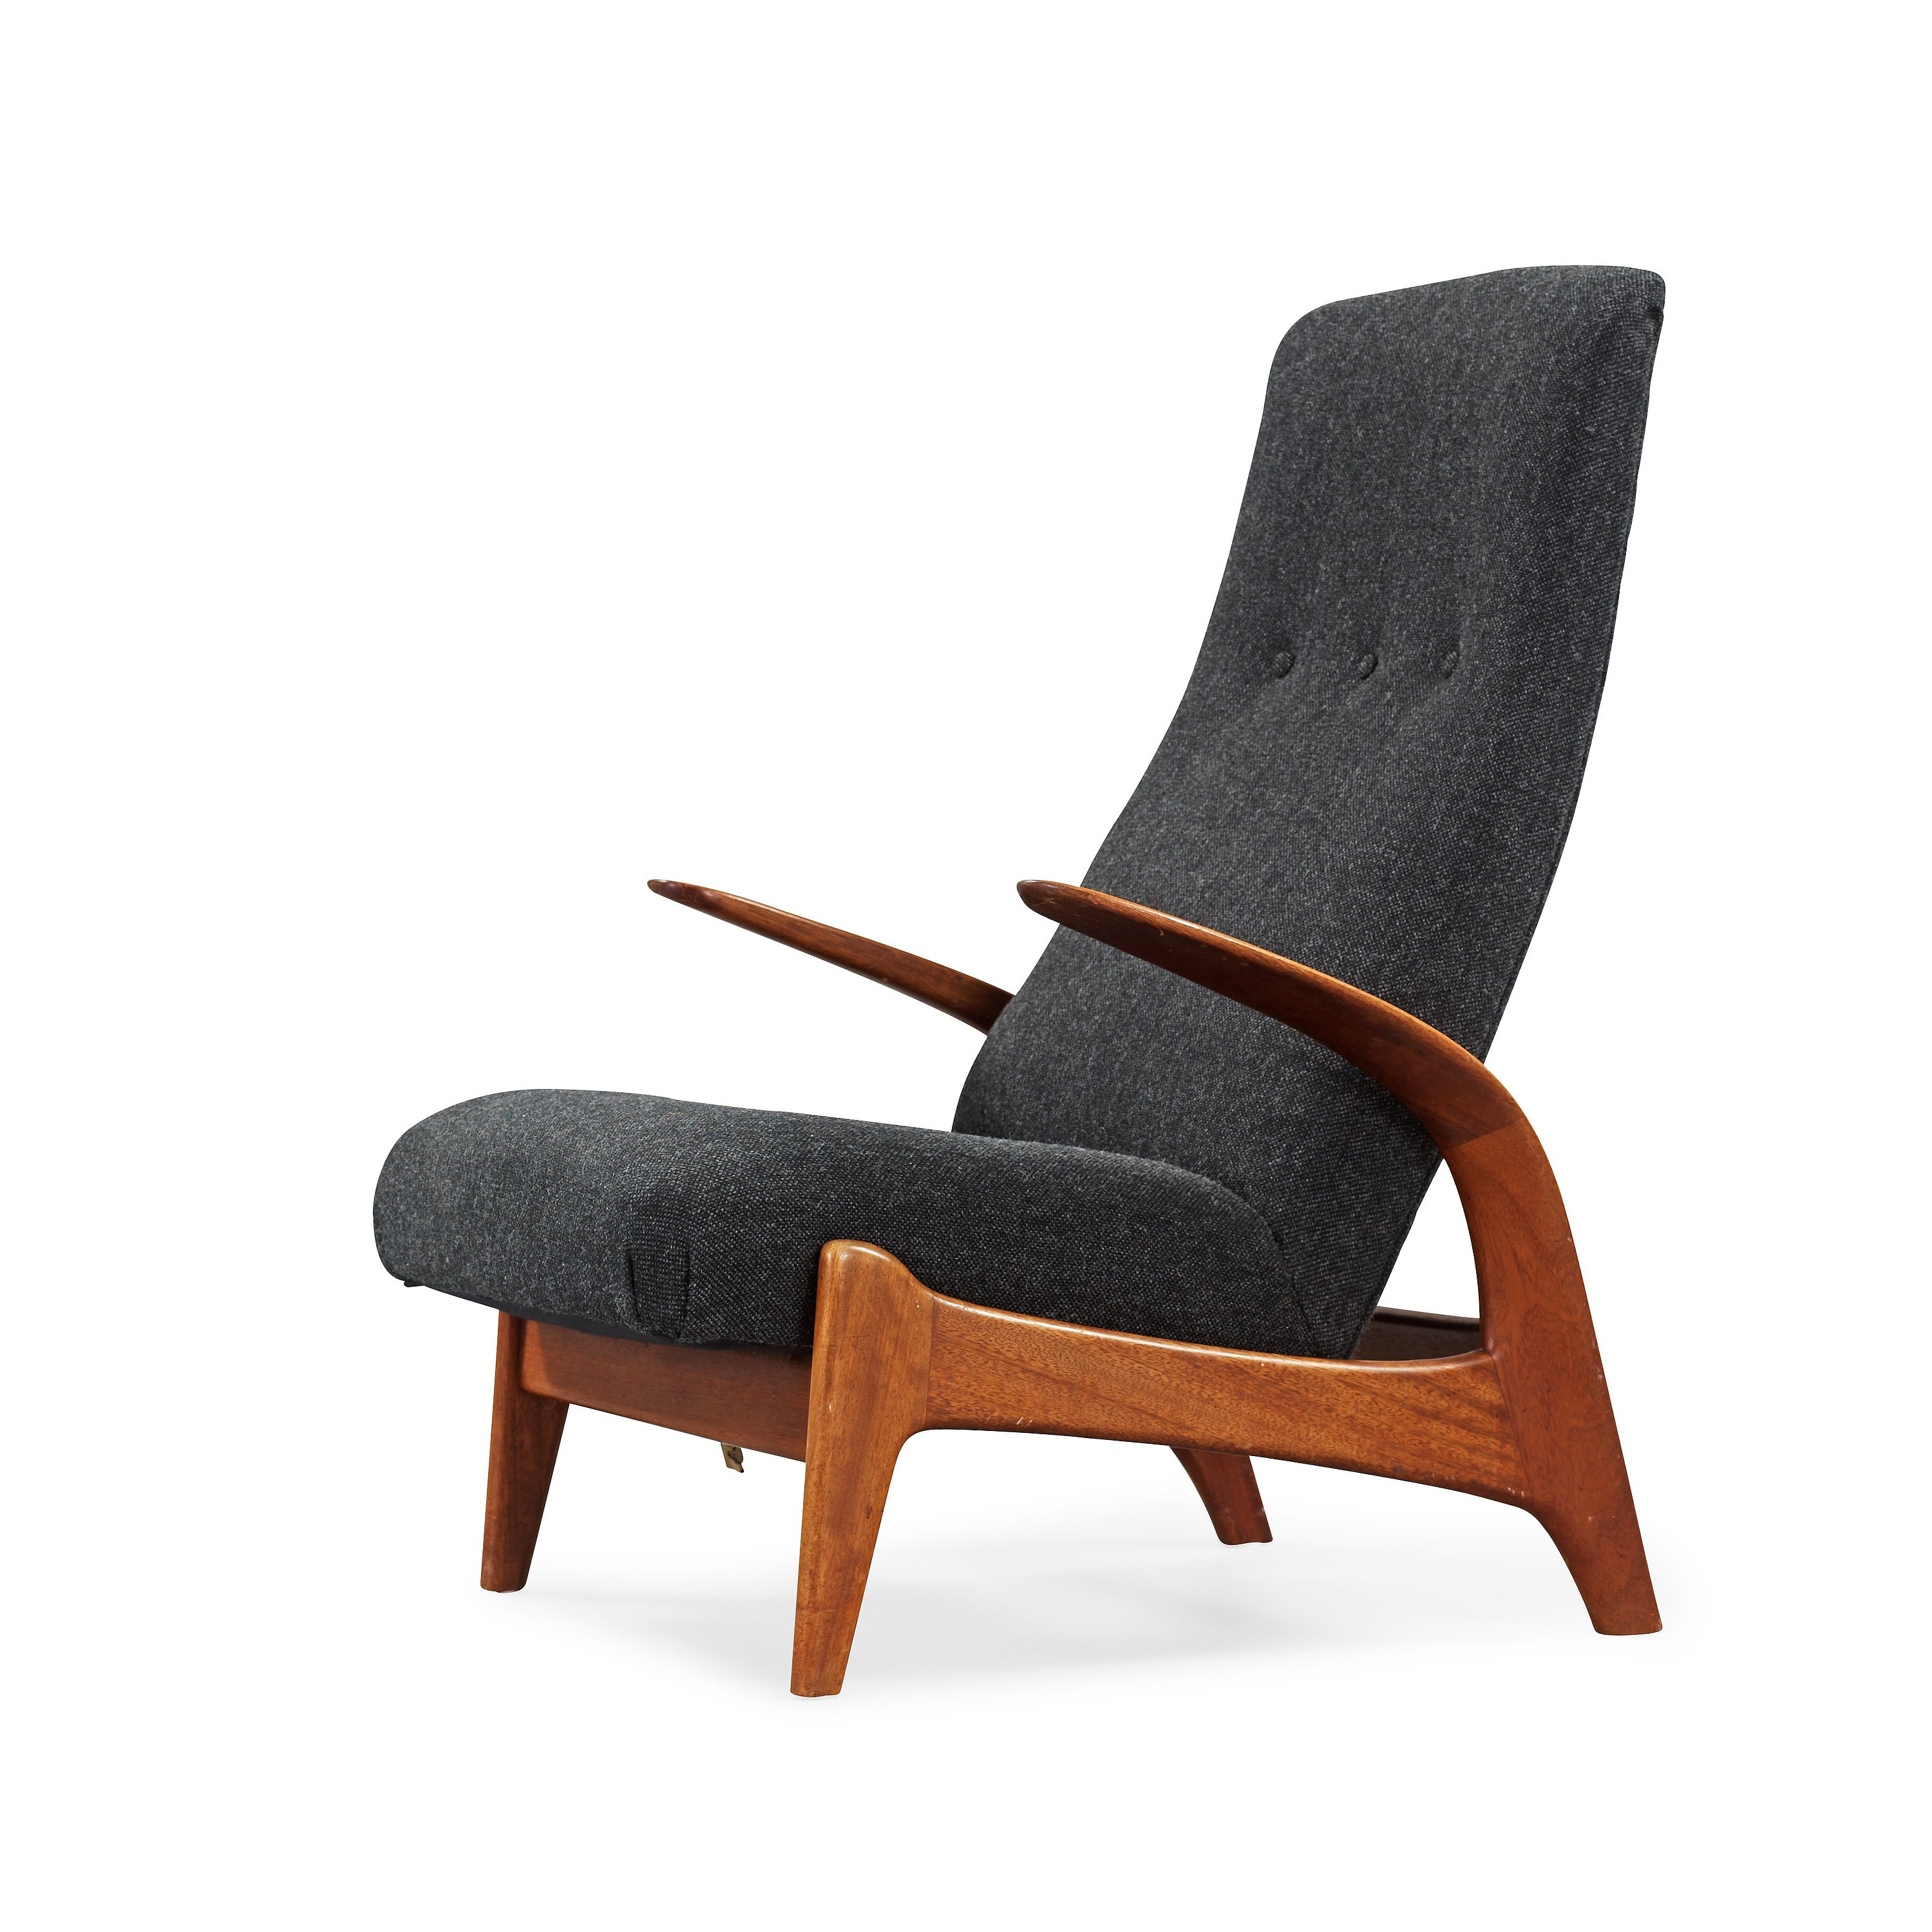 Swell A Rastad Relling Teak Rock N Rest Lounge Chair Download Free Architecture Designs Philgrimeyleaguecom